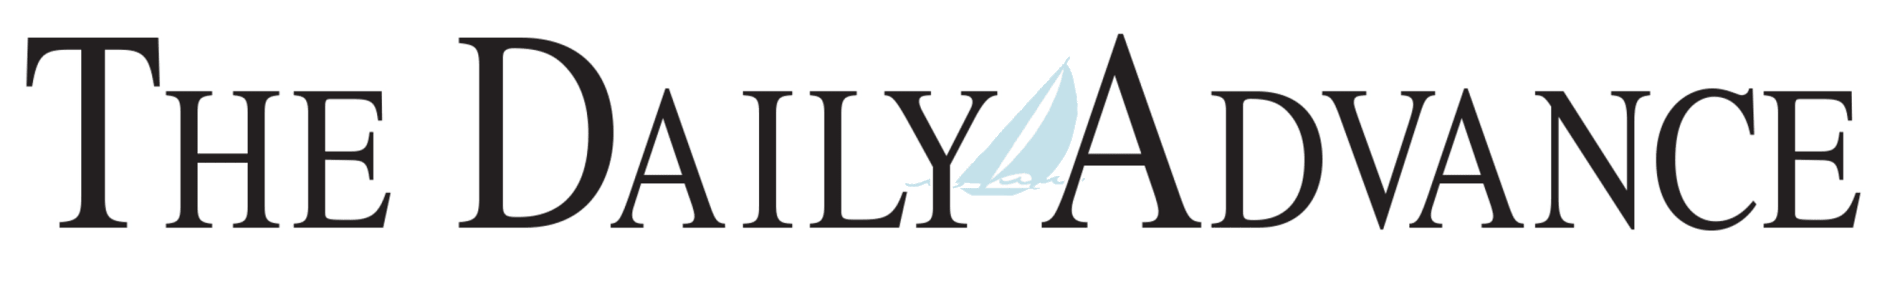 DailyAdvance-COLOR-BoatLogo-w1200-w1900.png